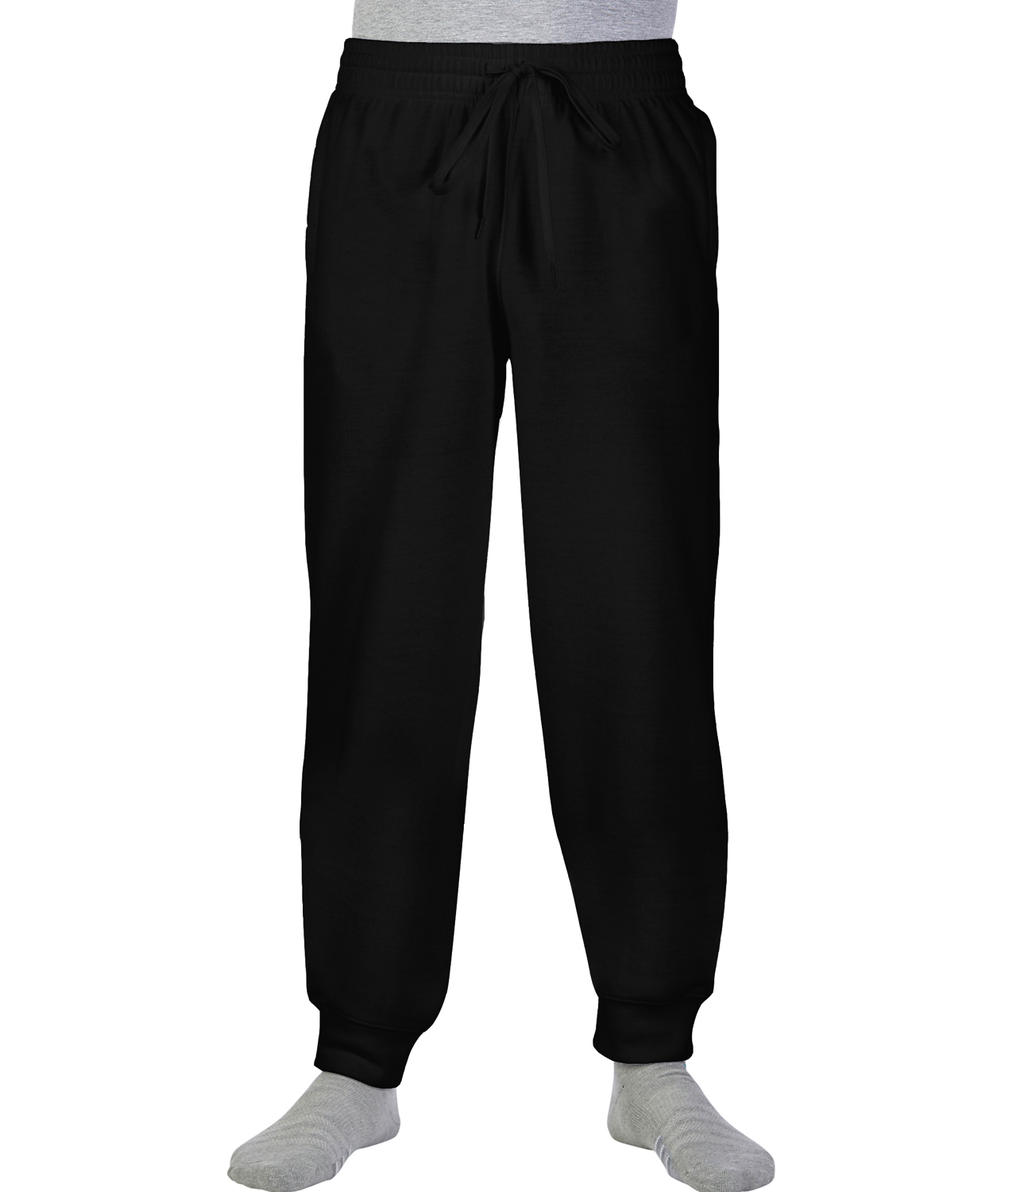 Heavy Blend Adult Sweatpants with Cuff